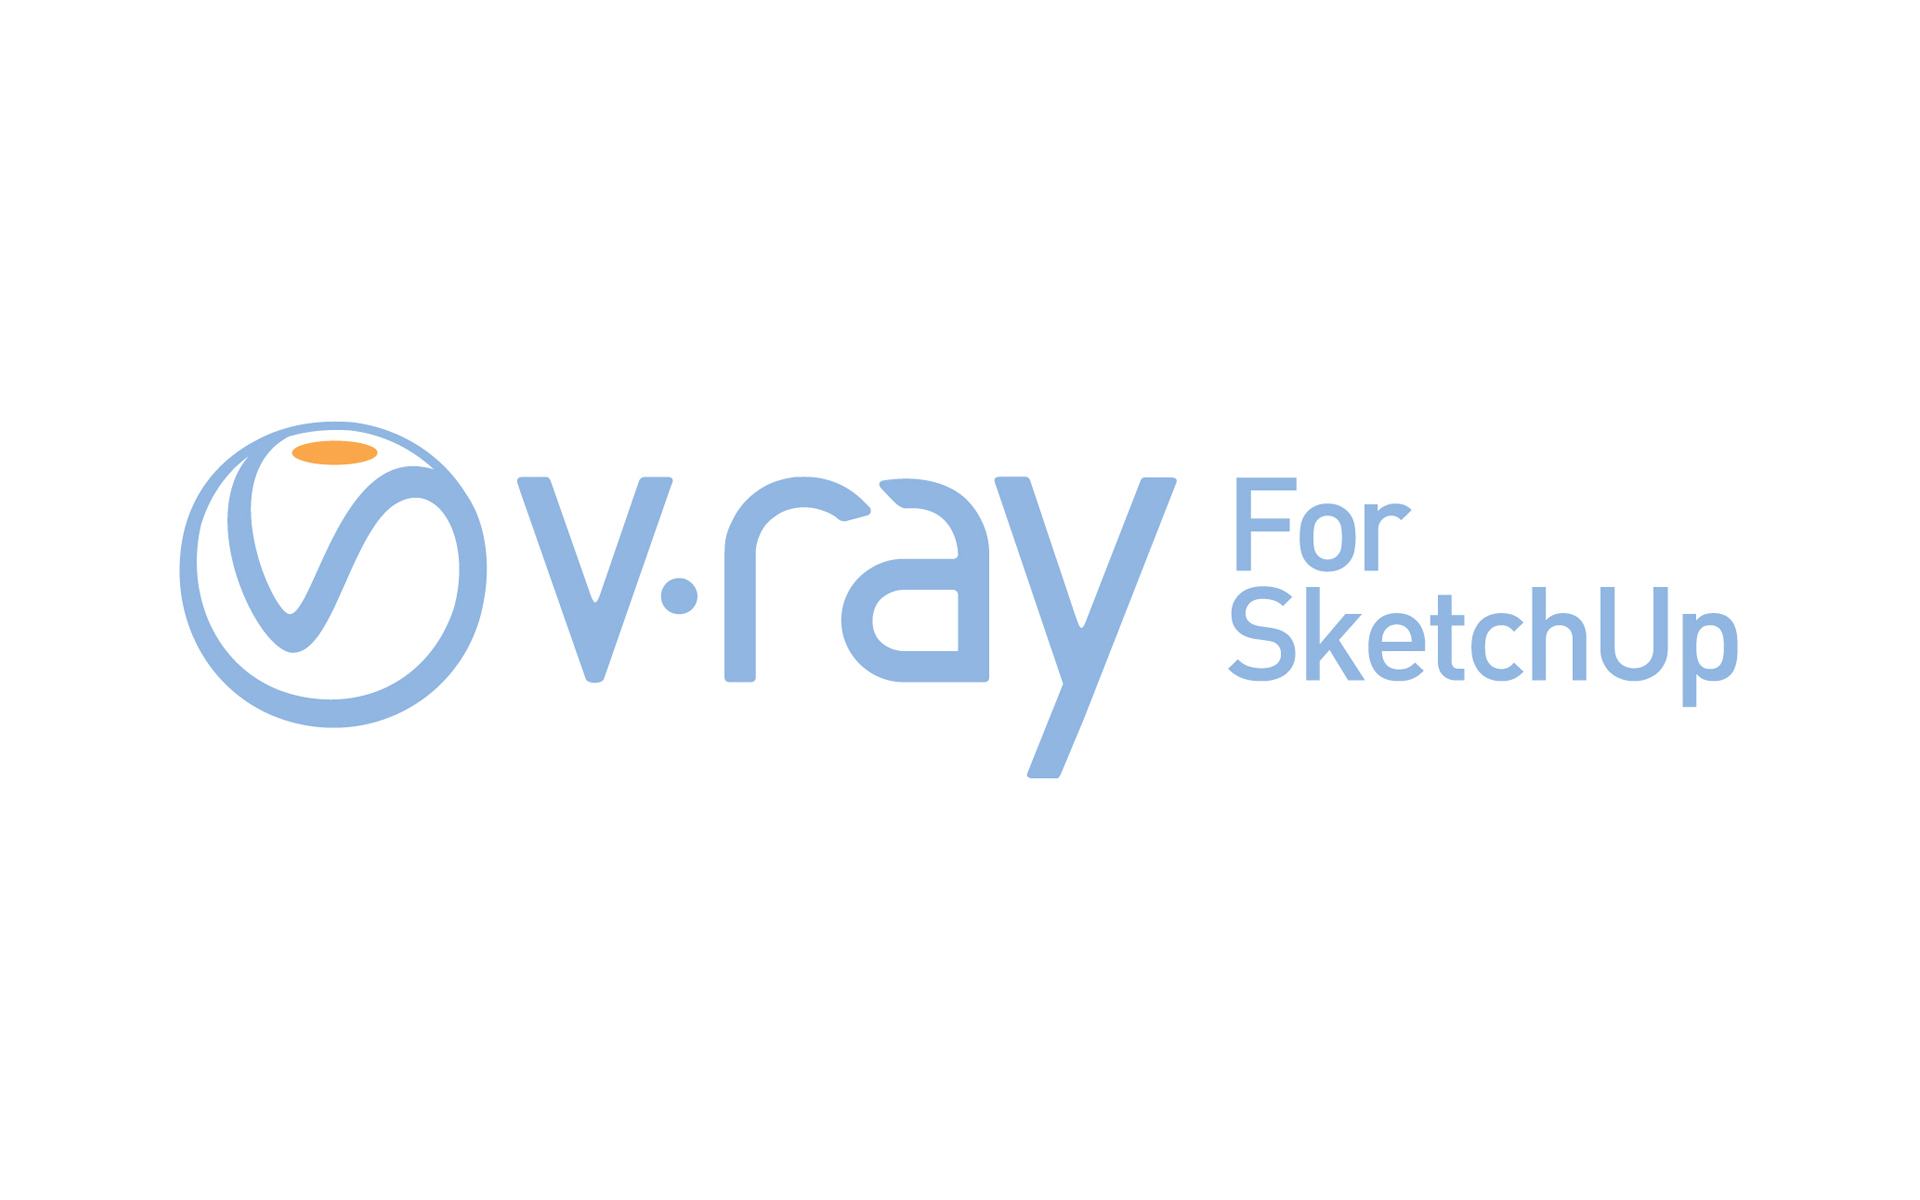 V-Ray for SketchUp logo